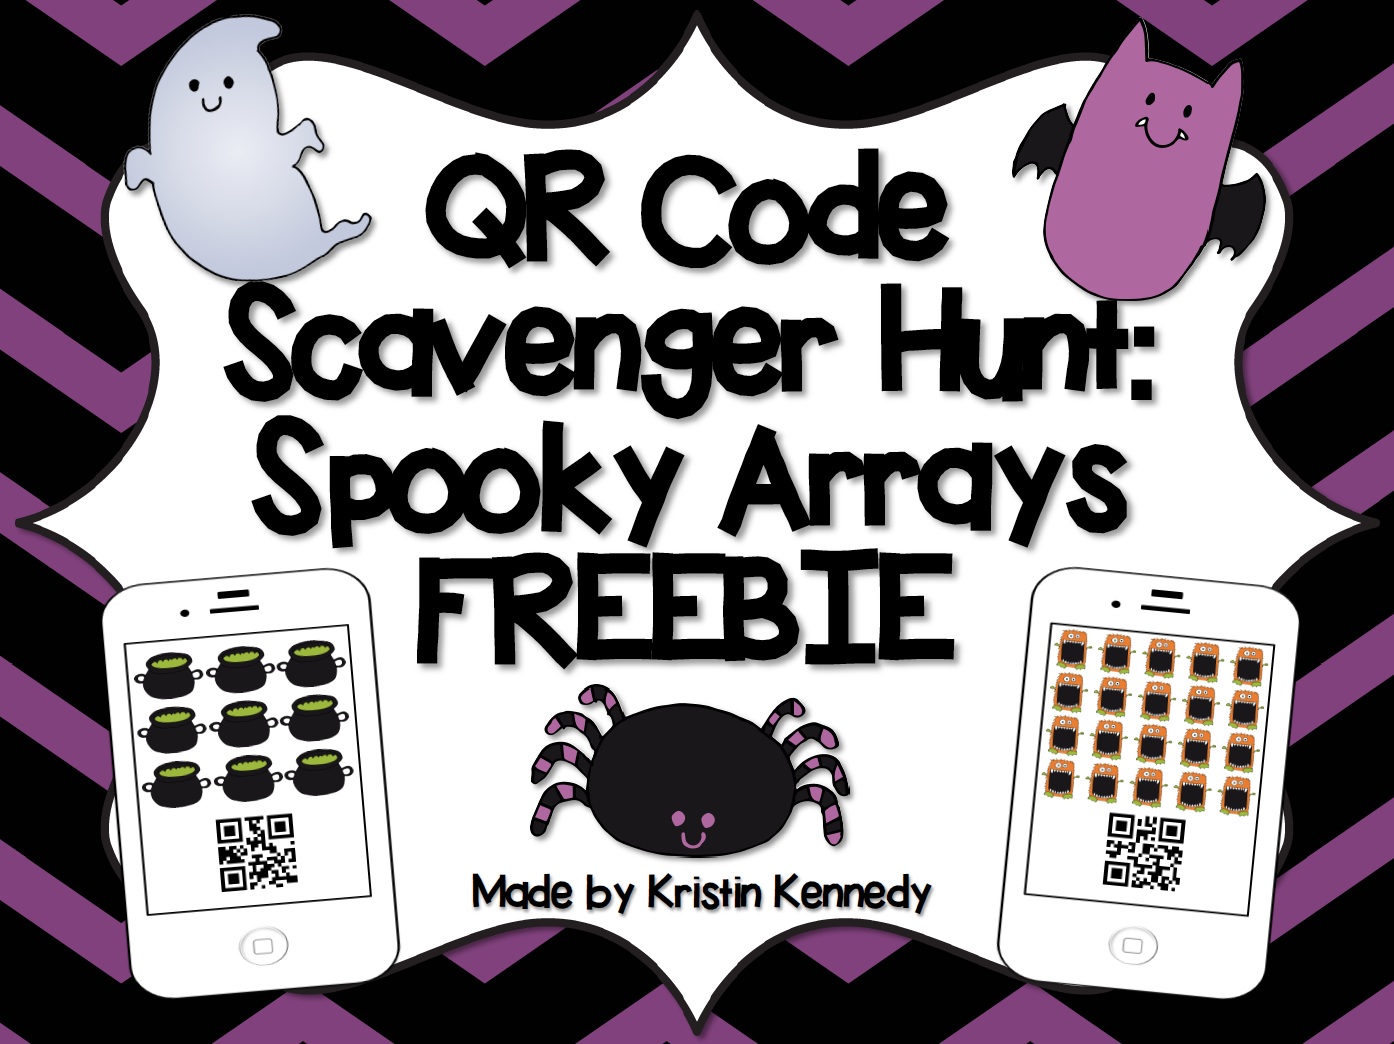 Iteach 1 1 Spooky Arrays And Halloween Crafts For The Home